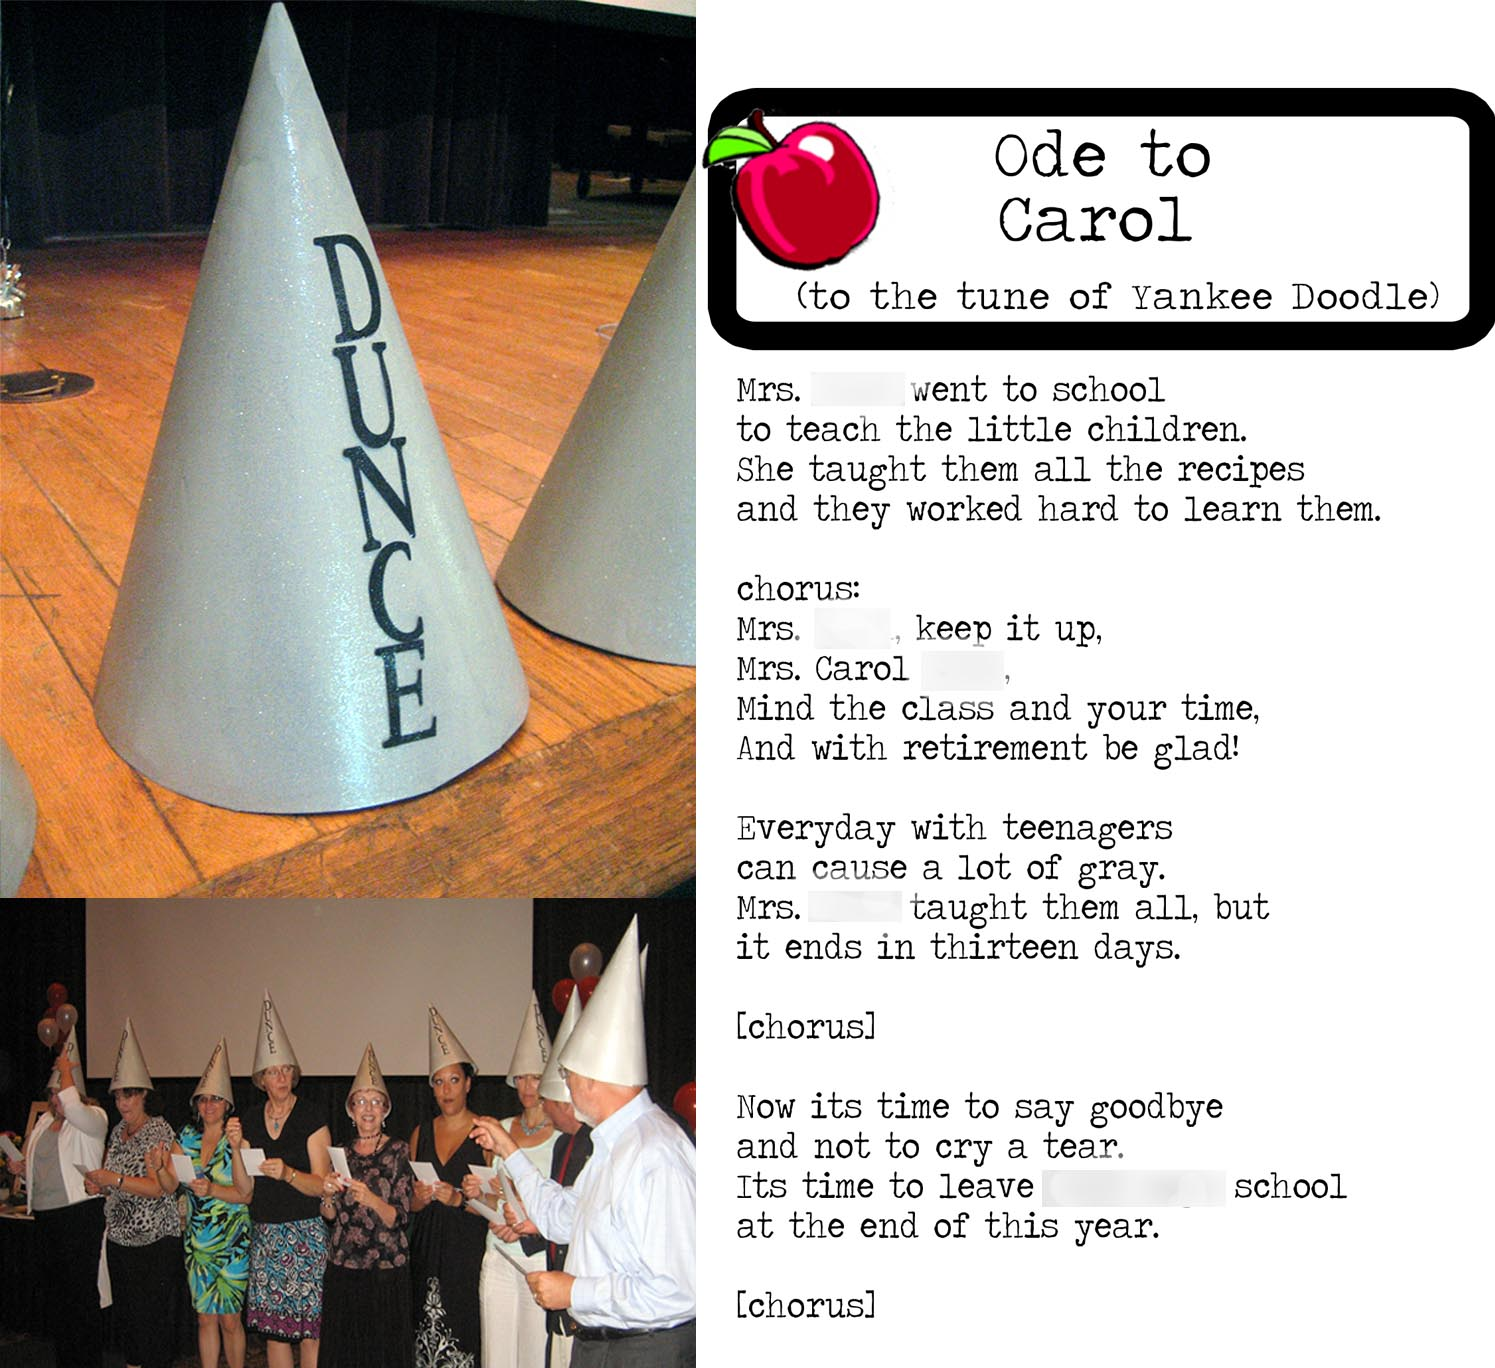 dunce hat template - nursing home activities program ideas happy memorial day 2014